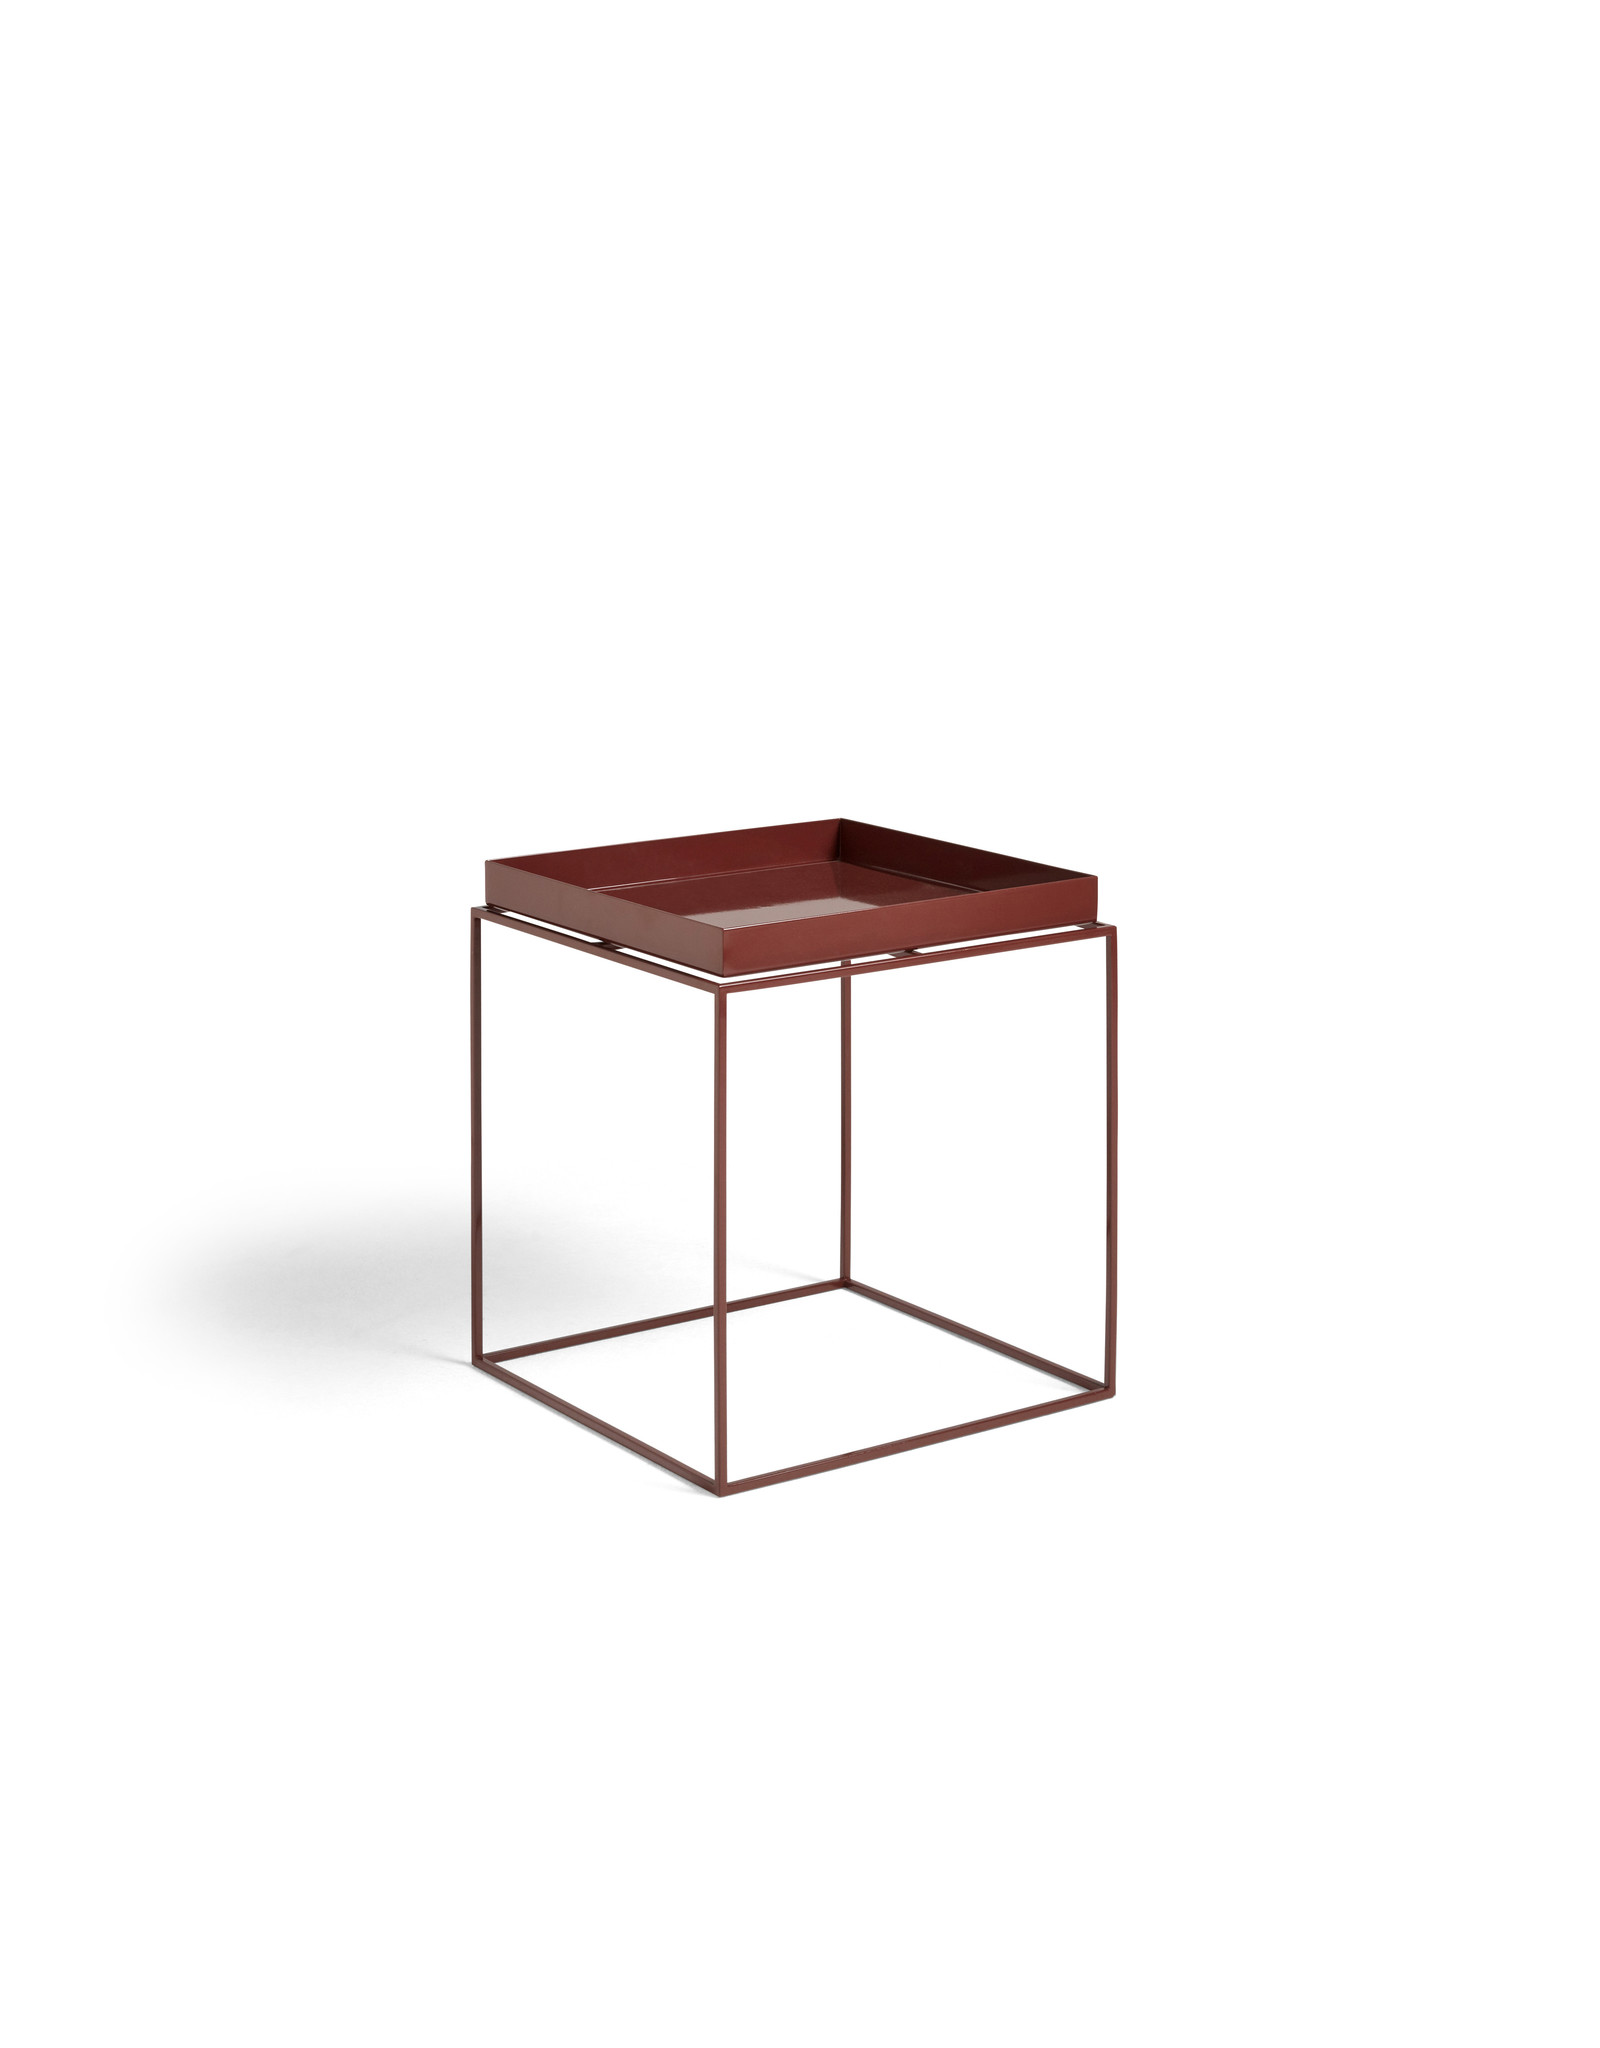 HAY TRAY TABLE / SIDE TABLE M CHOCOLATE HIGH GLOSS